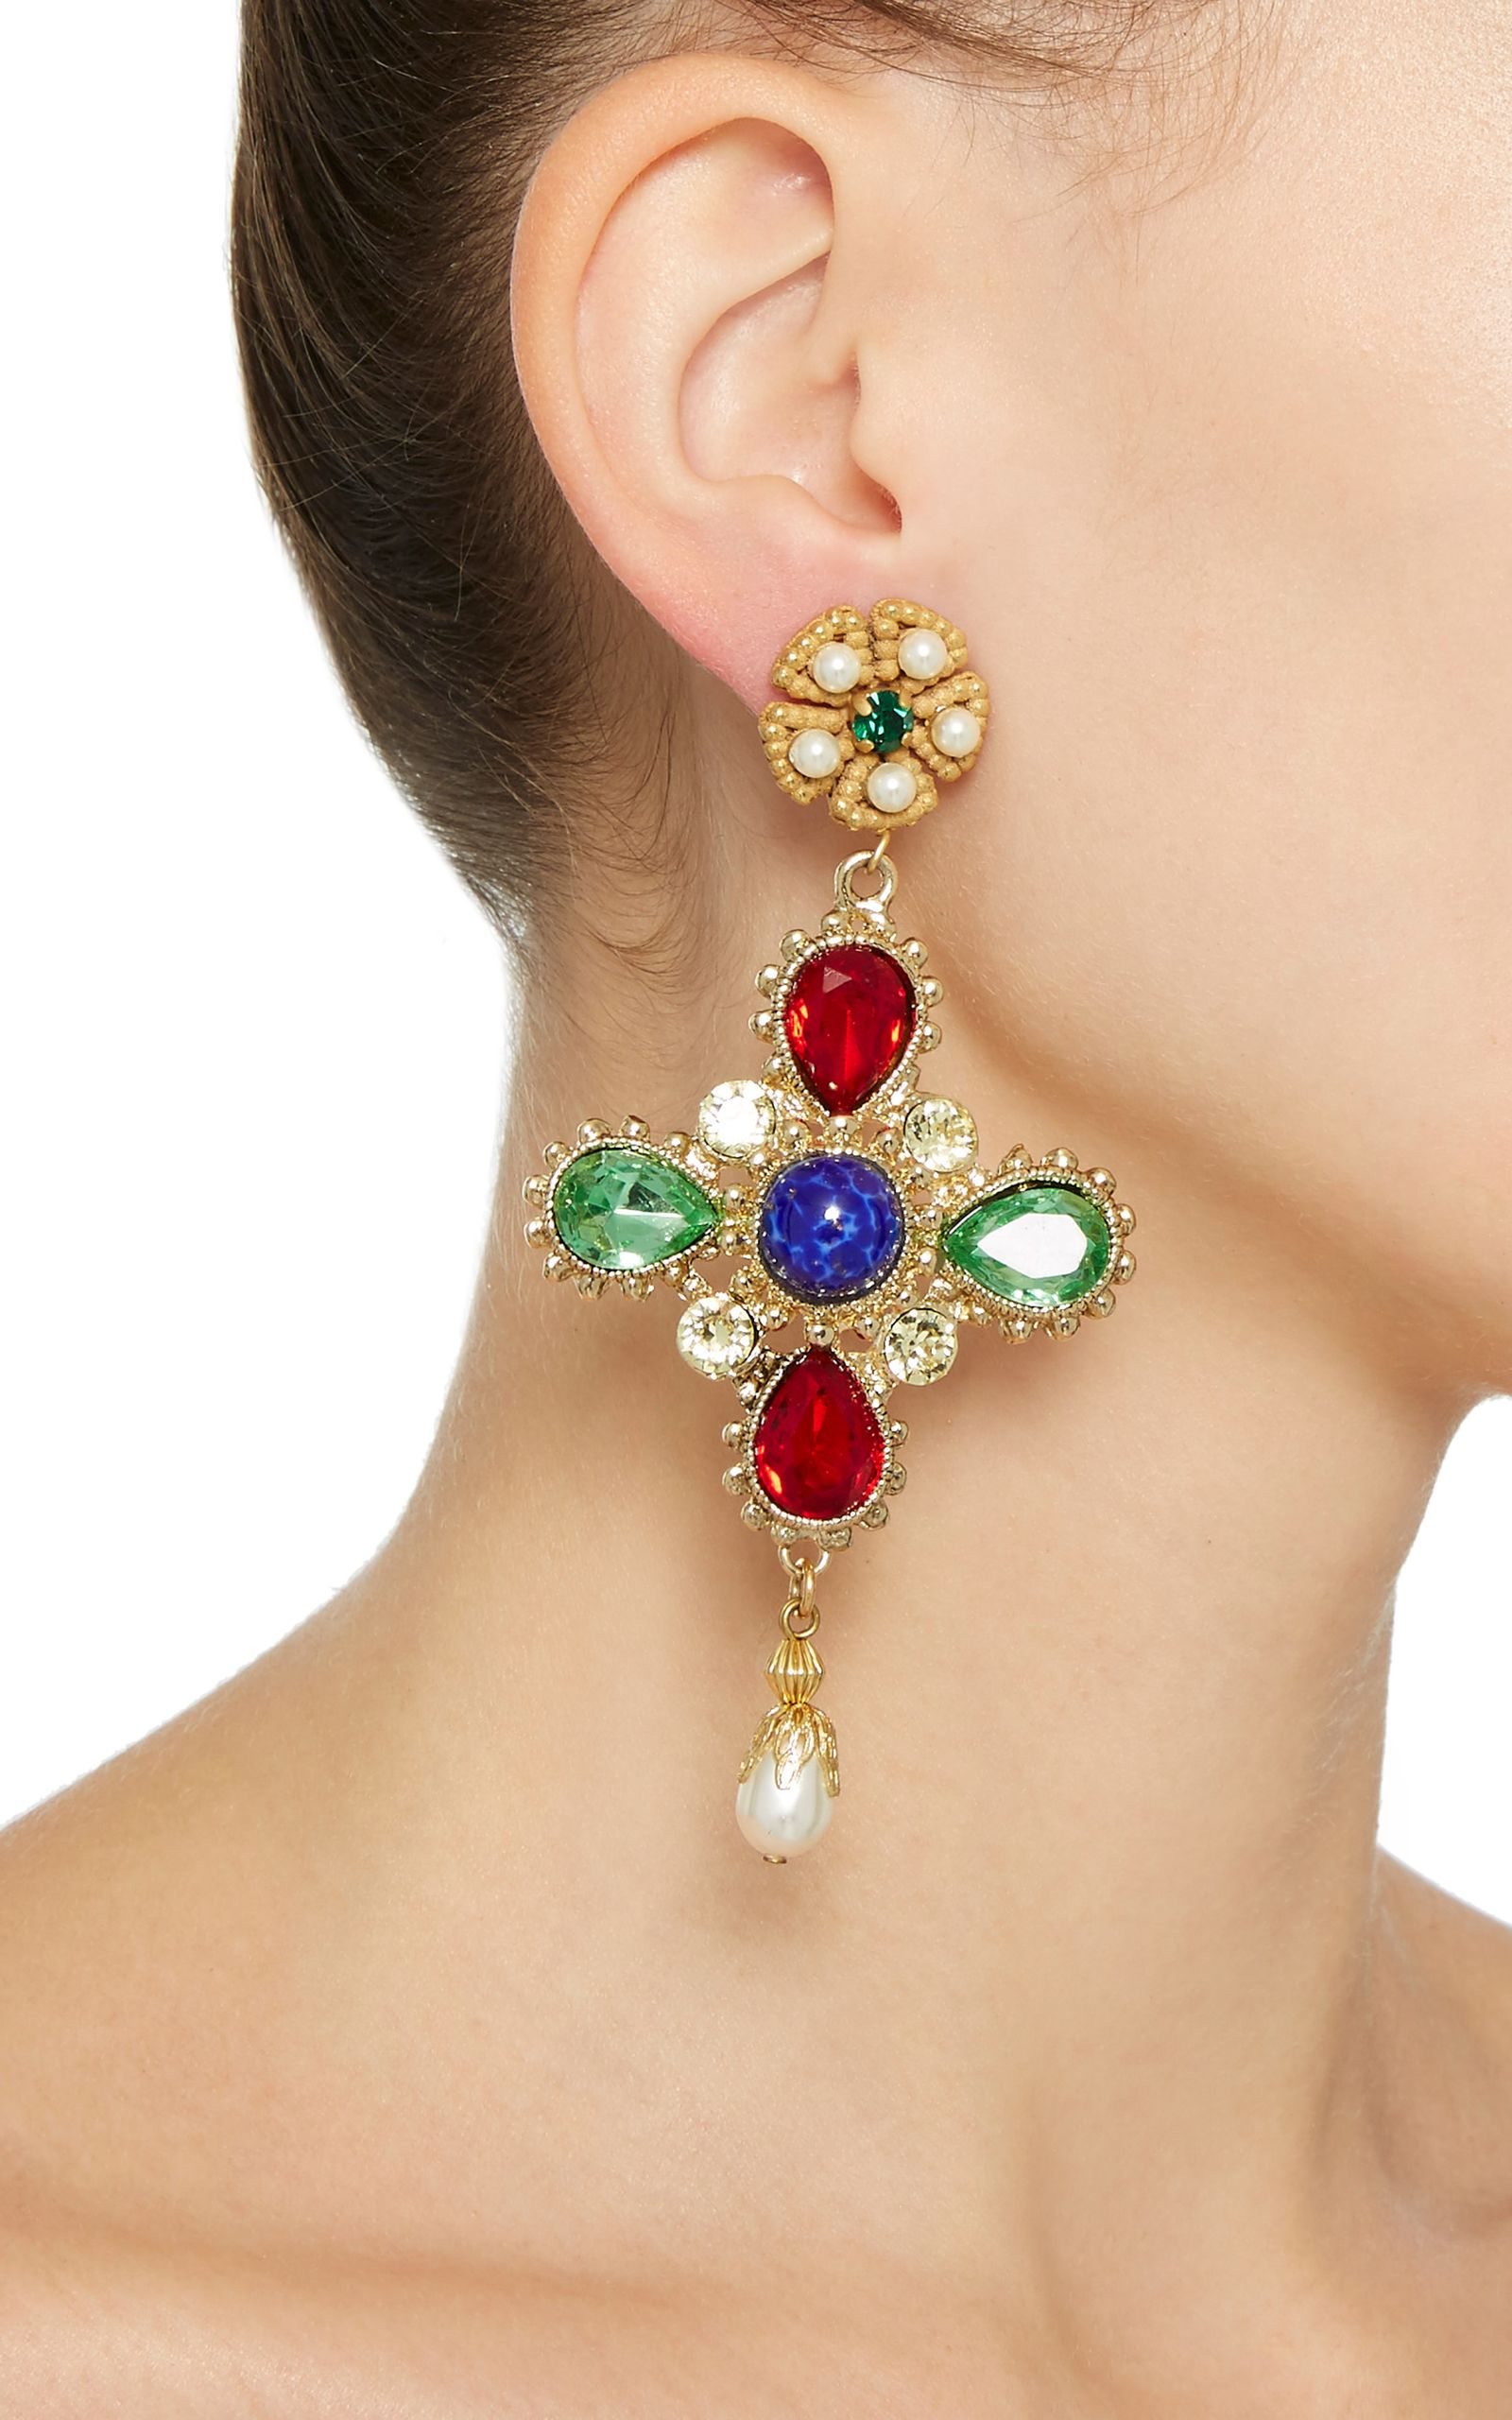 preorder sapphire moda multicolor creole pin by operandi gemstone gioia for on earclips earrings